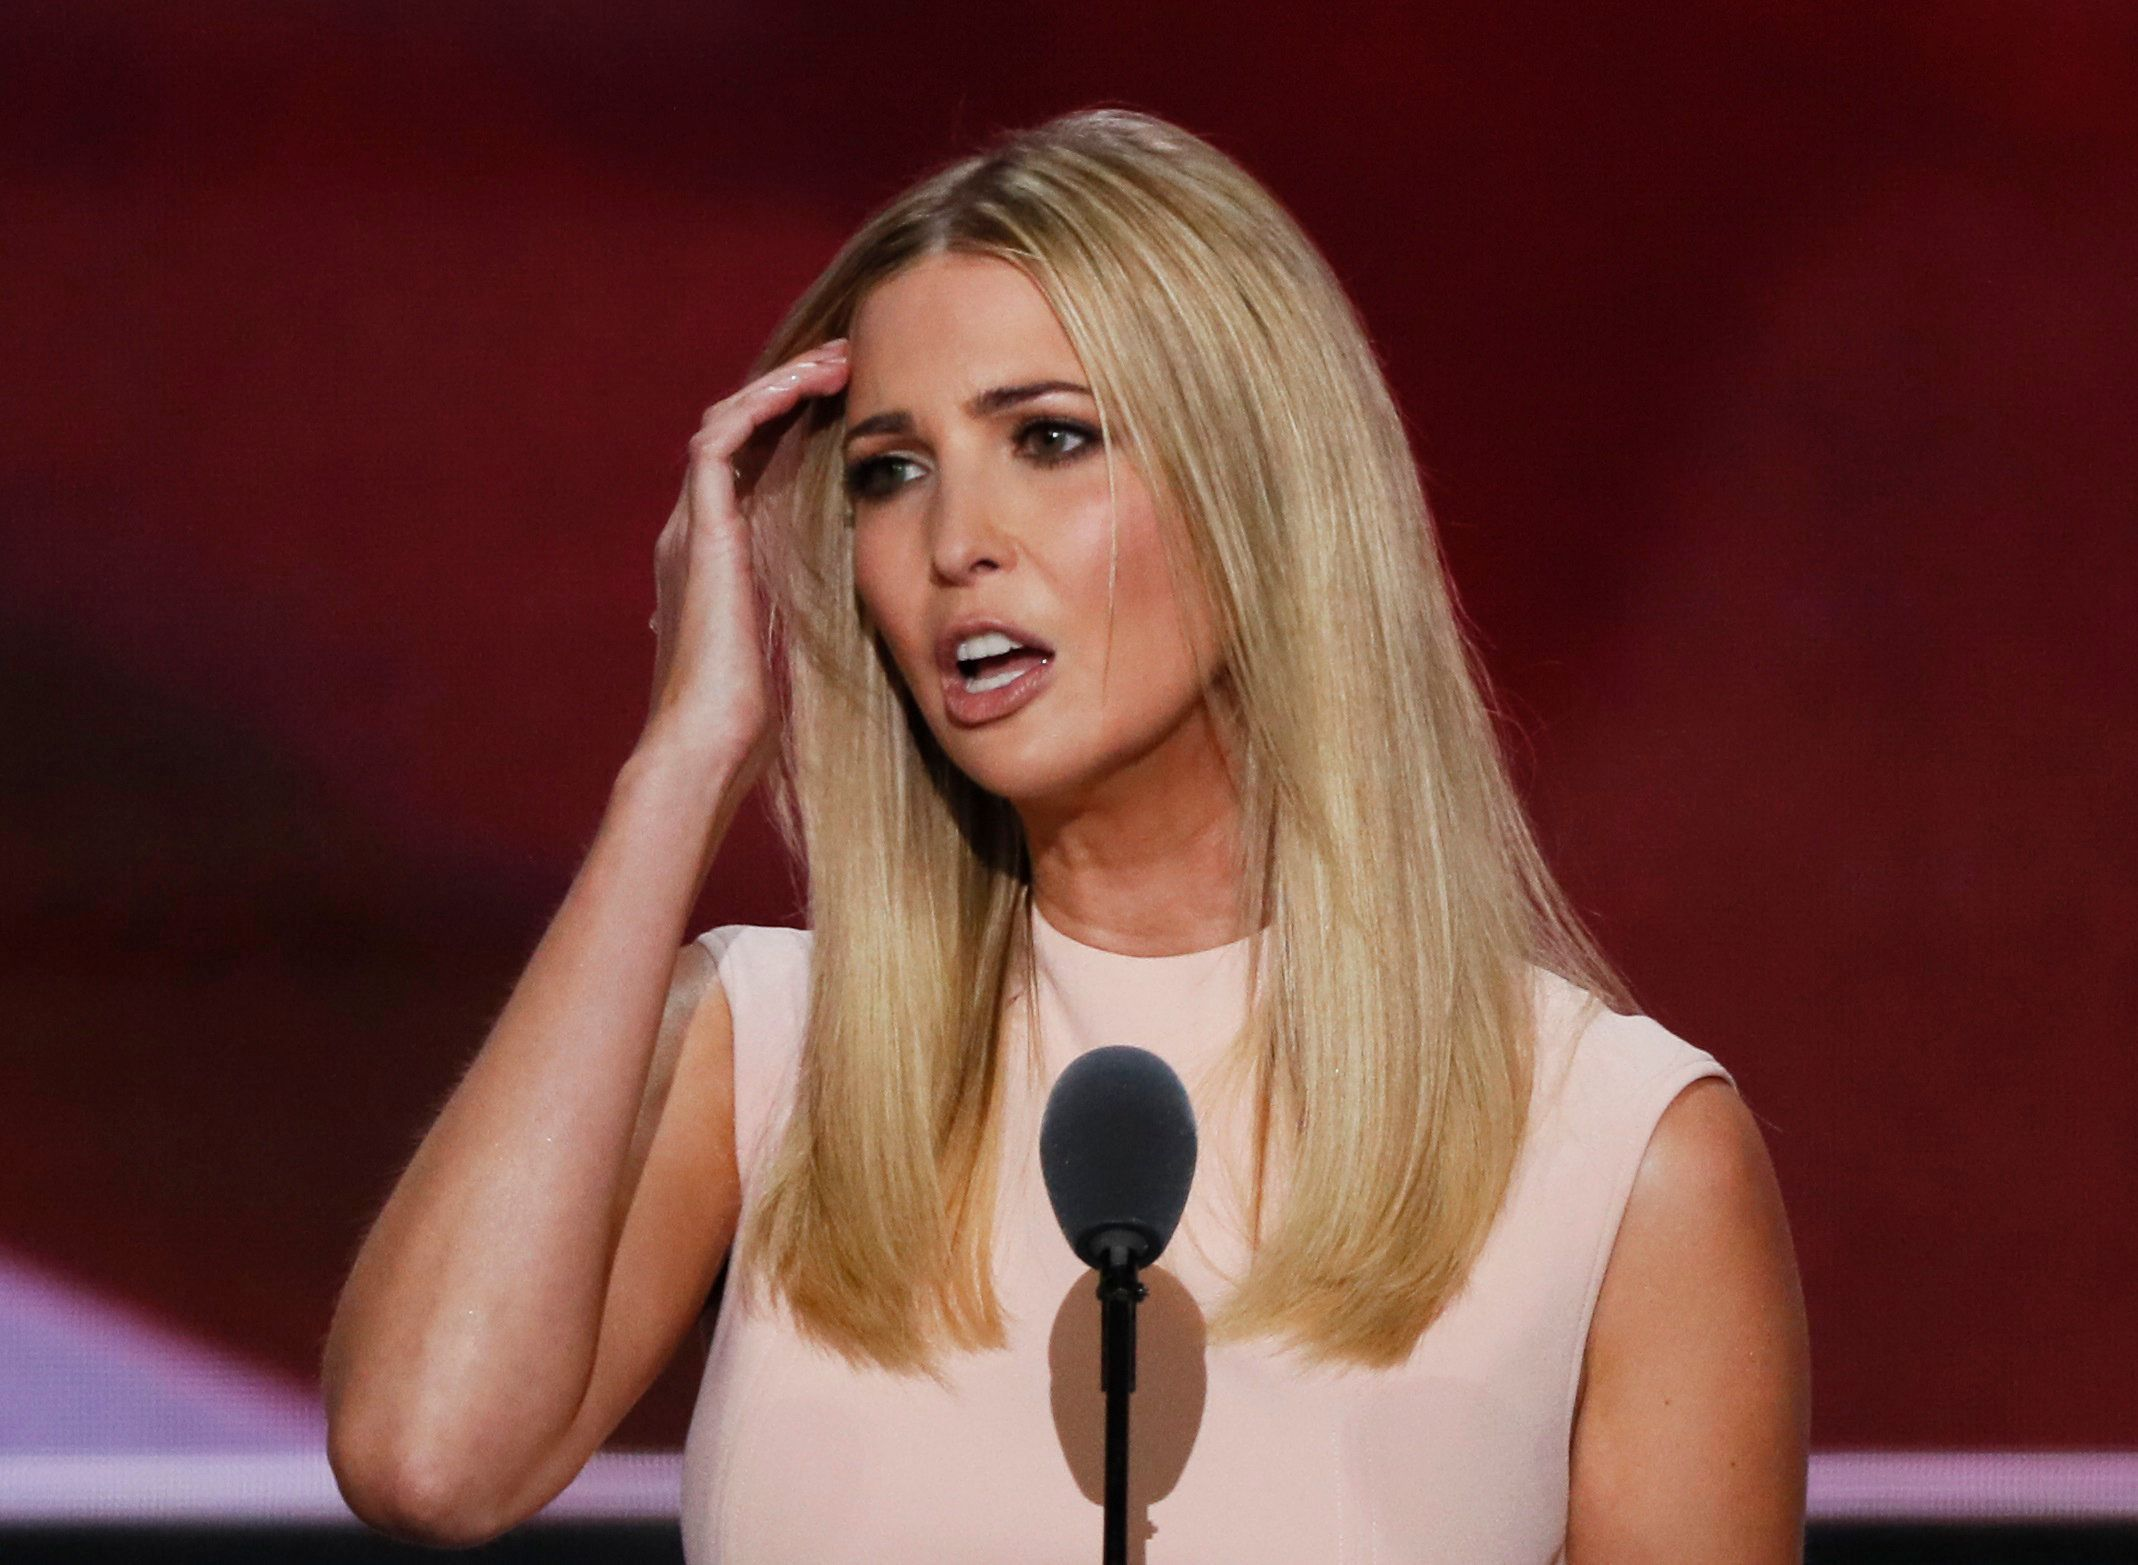 Ivanka Trump Said Her Dad Cared About Child Care. His Budget Says